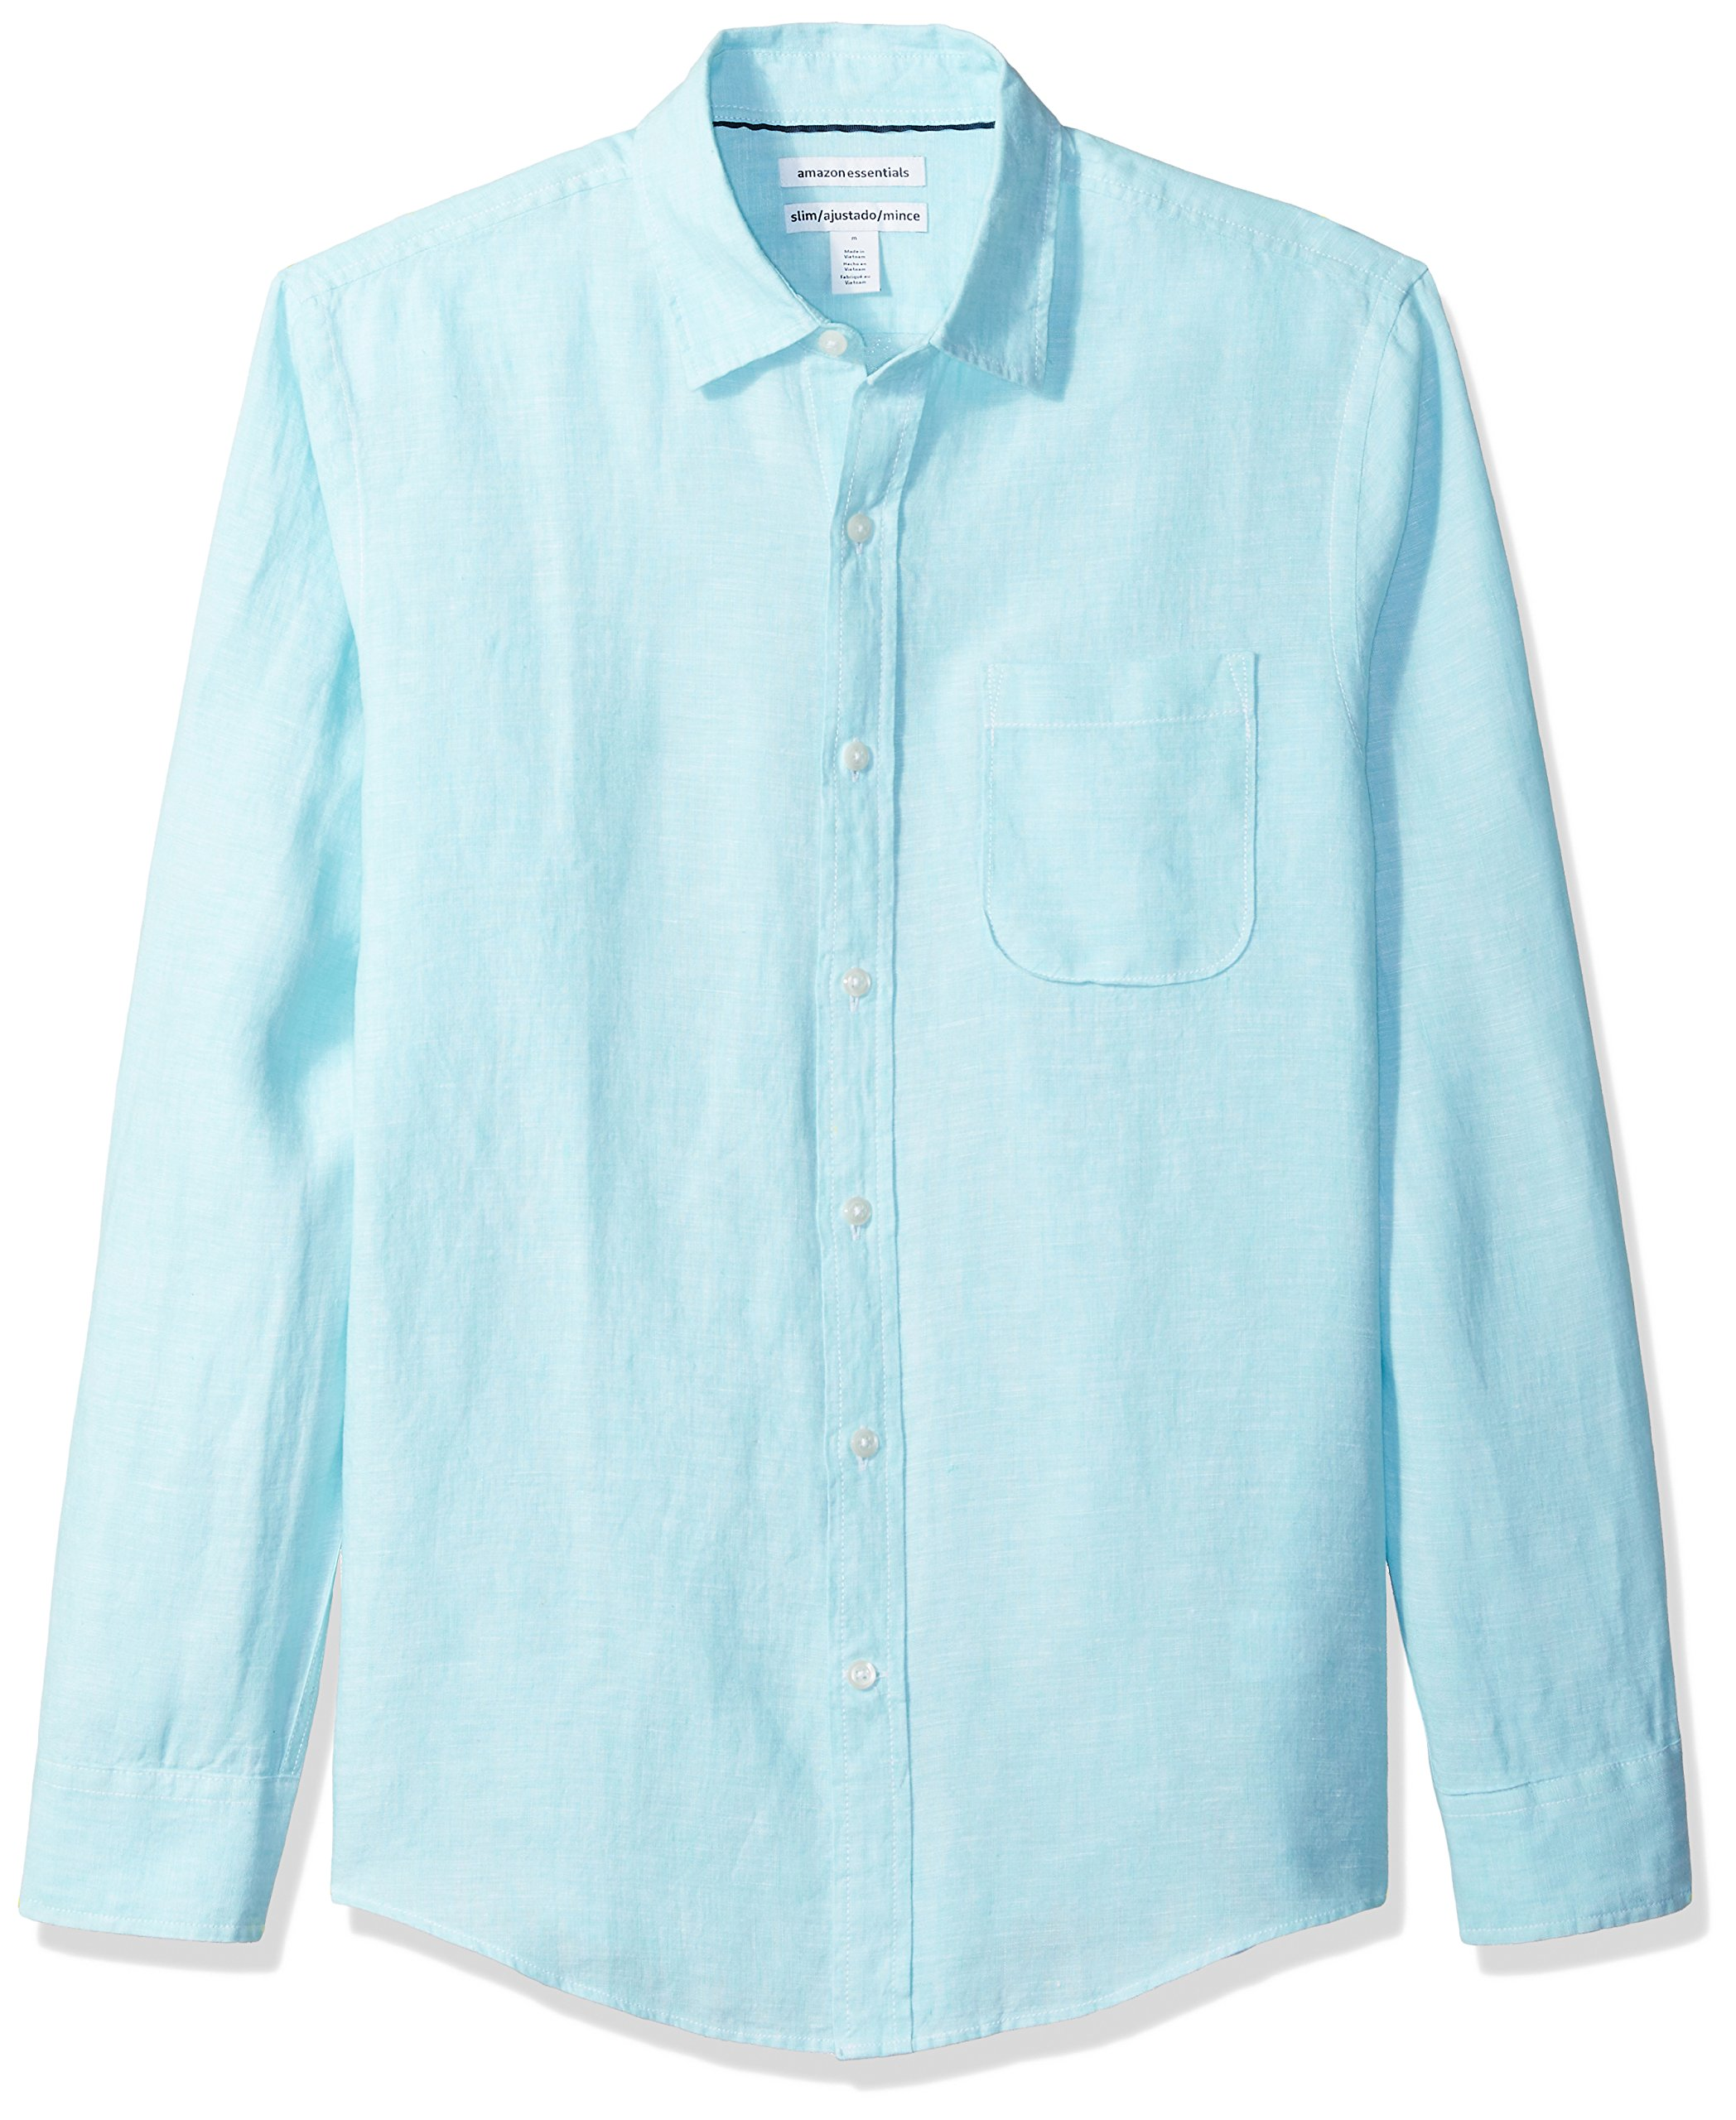 Amazon Essentials Men's Slim-Fit Long-Sleeve Linen Shirt, Aqua, Small by Amazon Essentials (Image #1)